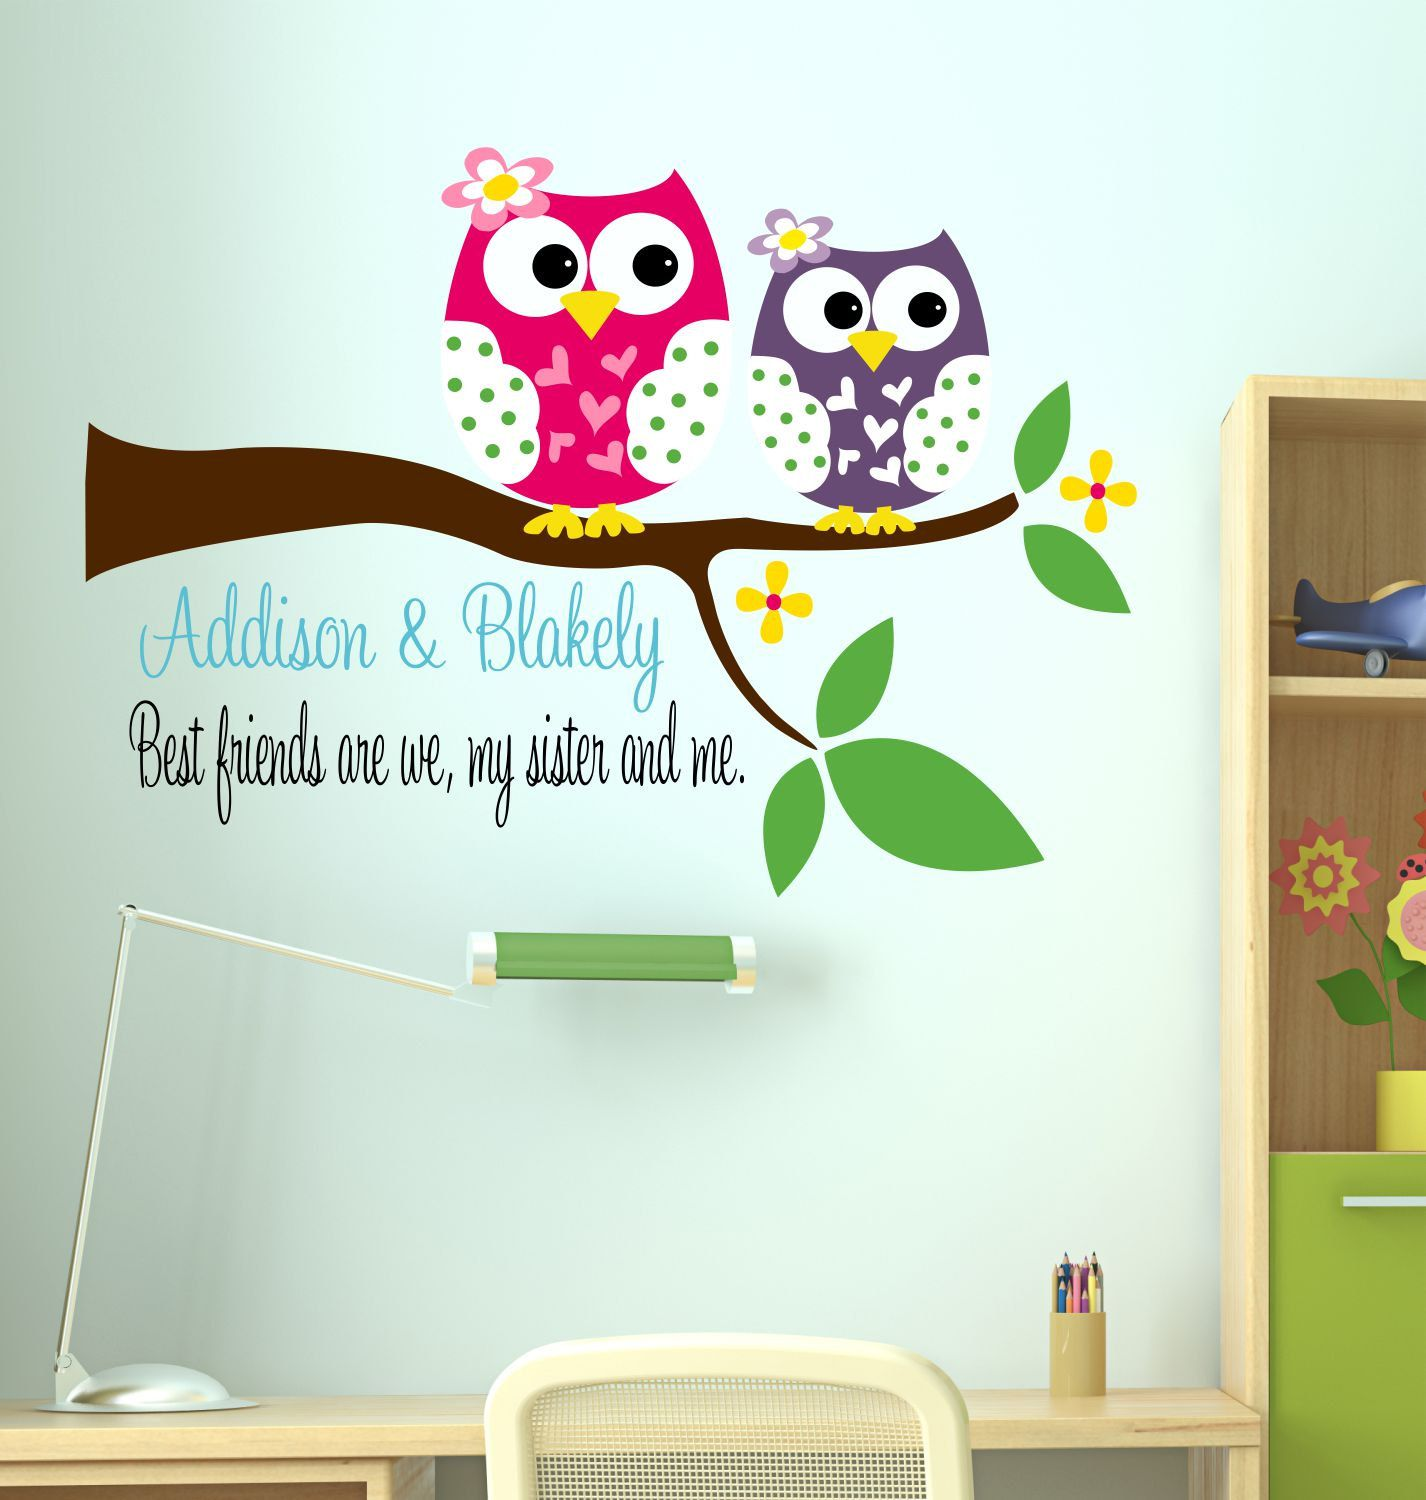 owl decal sisters wall decal with owl name wall decal owl decal sisters wall decal with owl name wall decal childrens decor owl vinyl wall decal